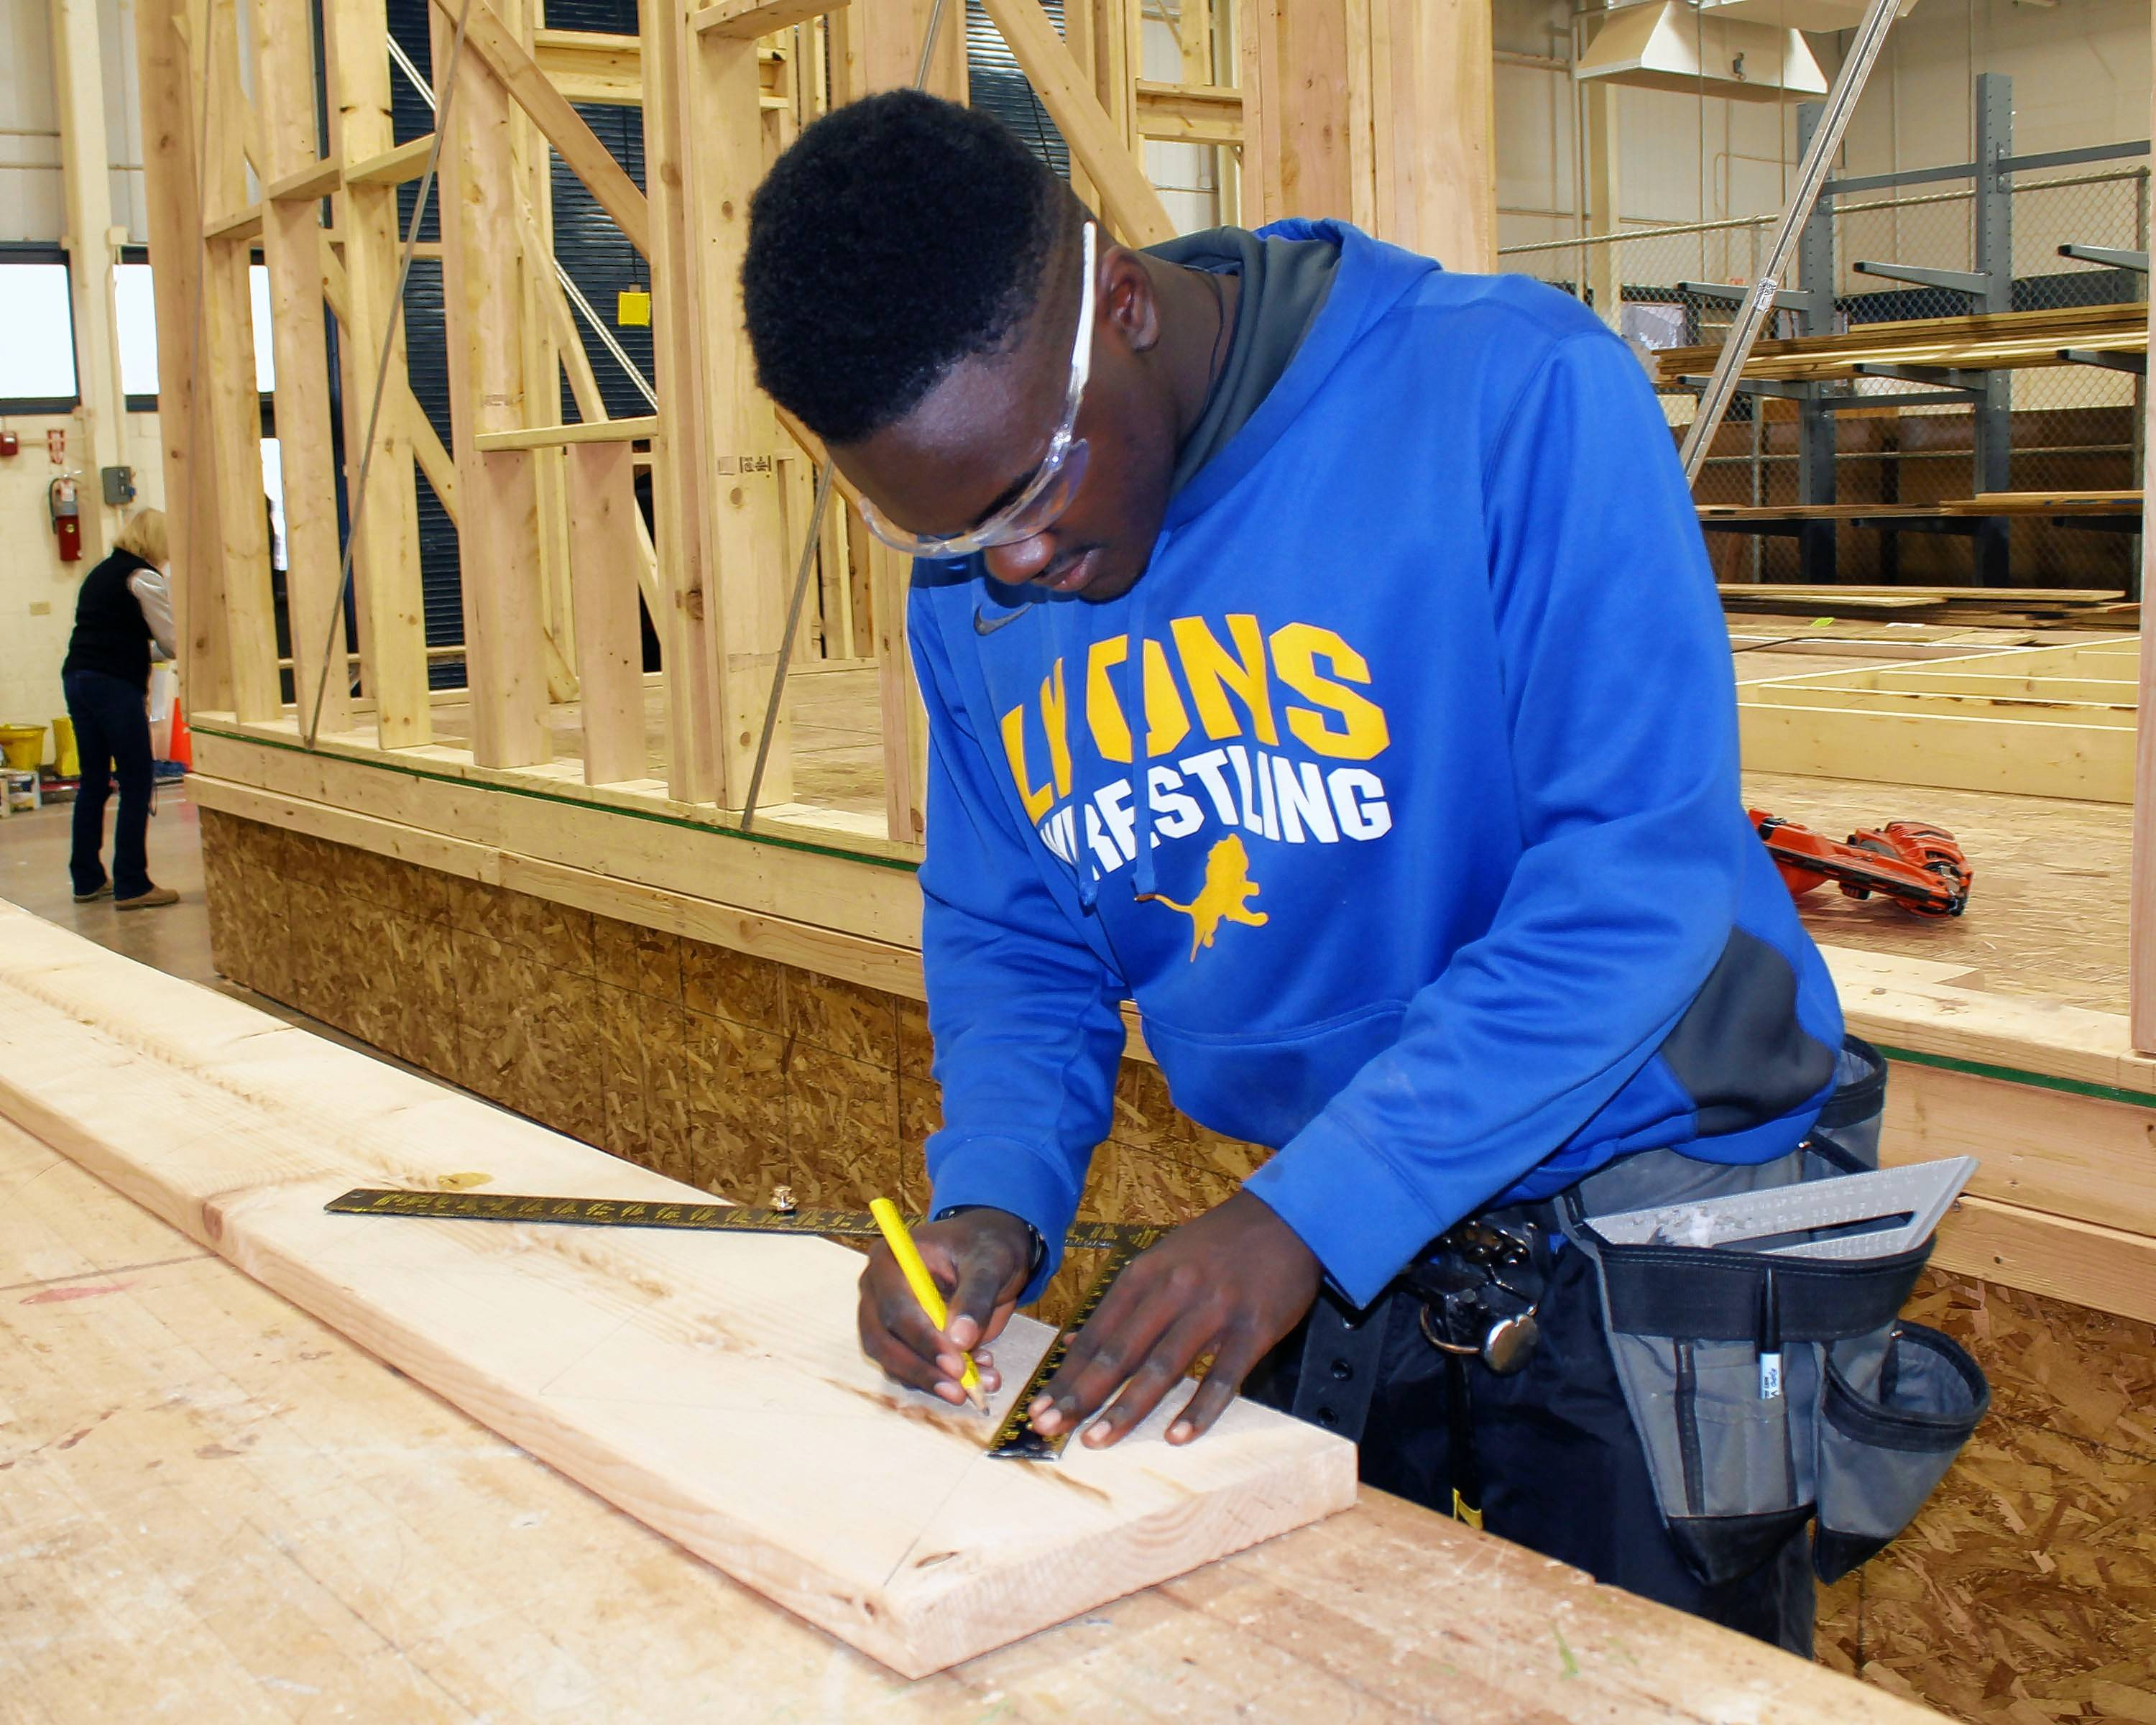 After calculating the number of risers and treads needed for a stairway project, Jerry Presley uses a carpenter's square to mark out the cuts on the stringers. Presley is a senior from Lyons Township High School in the construction trades program at Technology Center of DuPage.